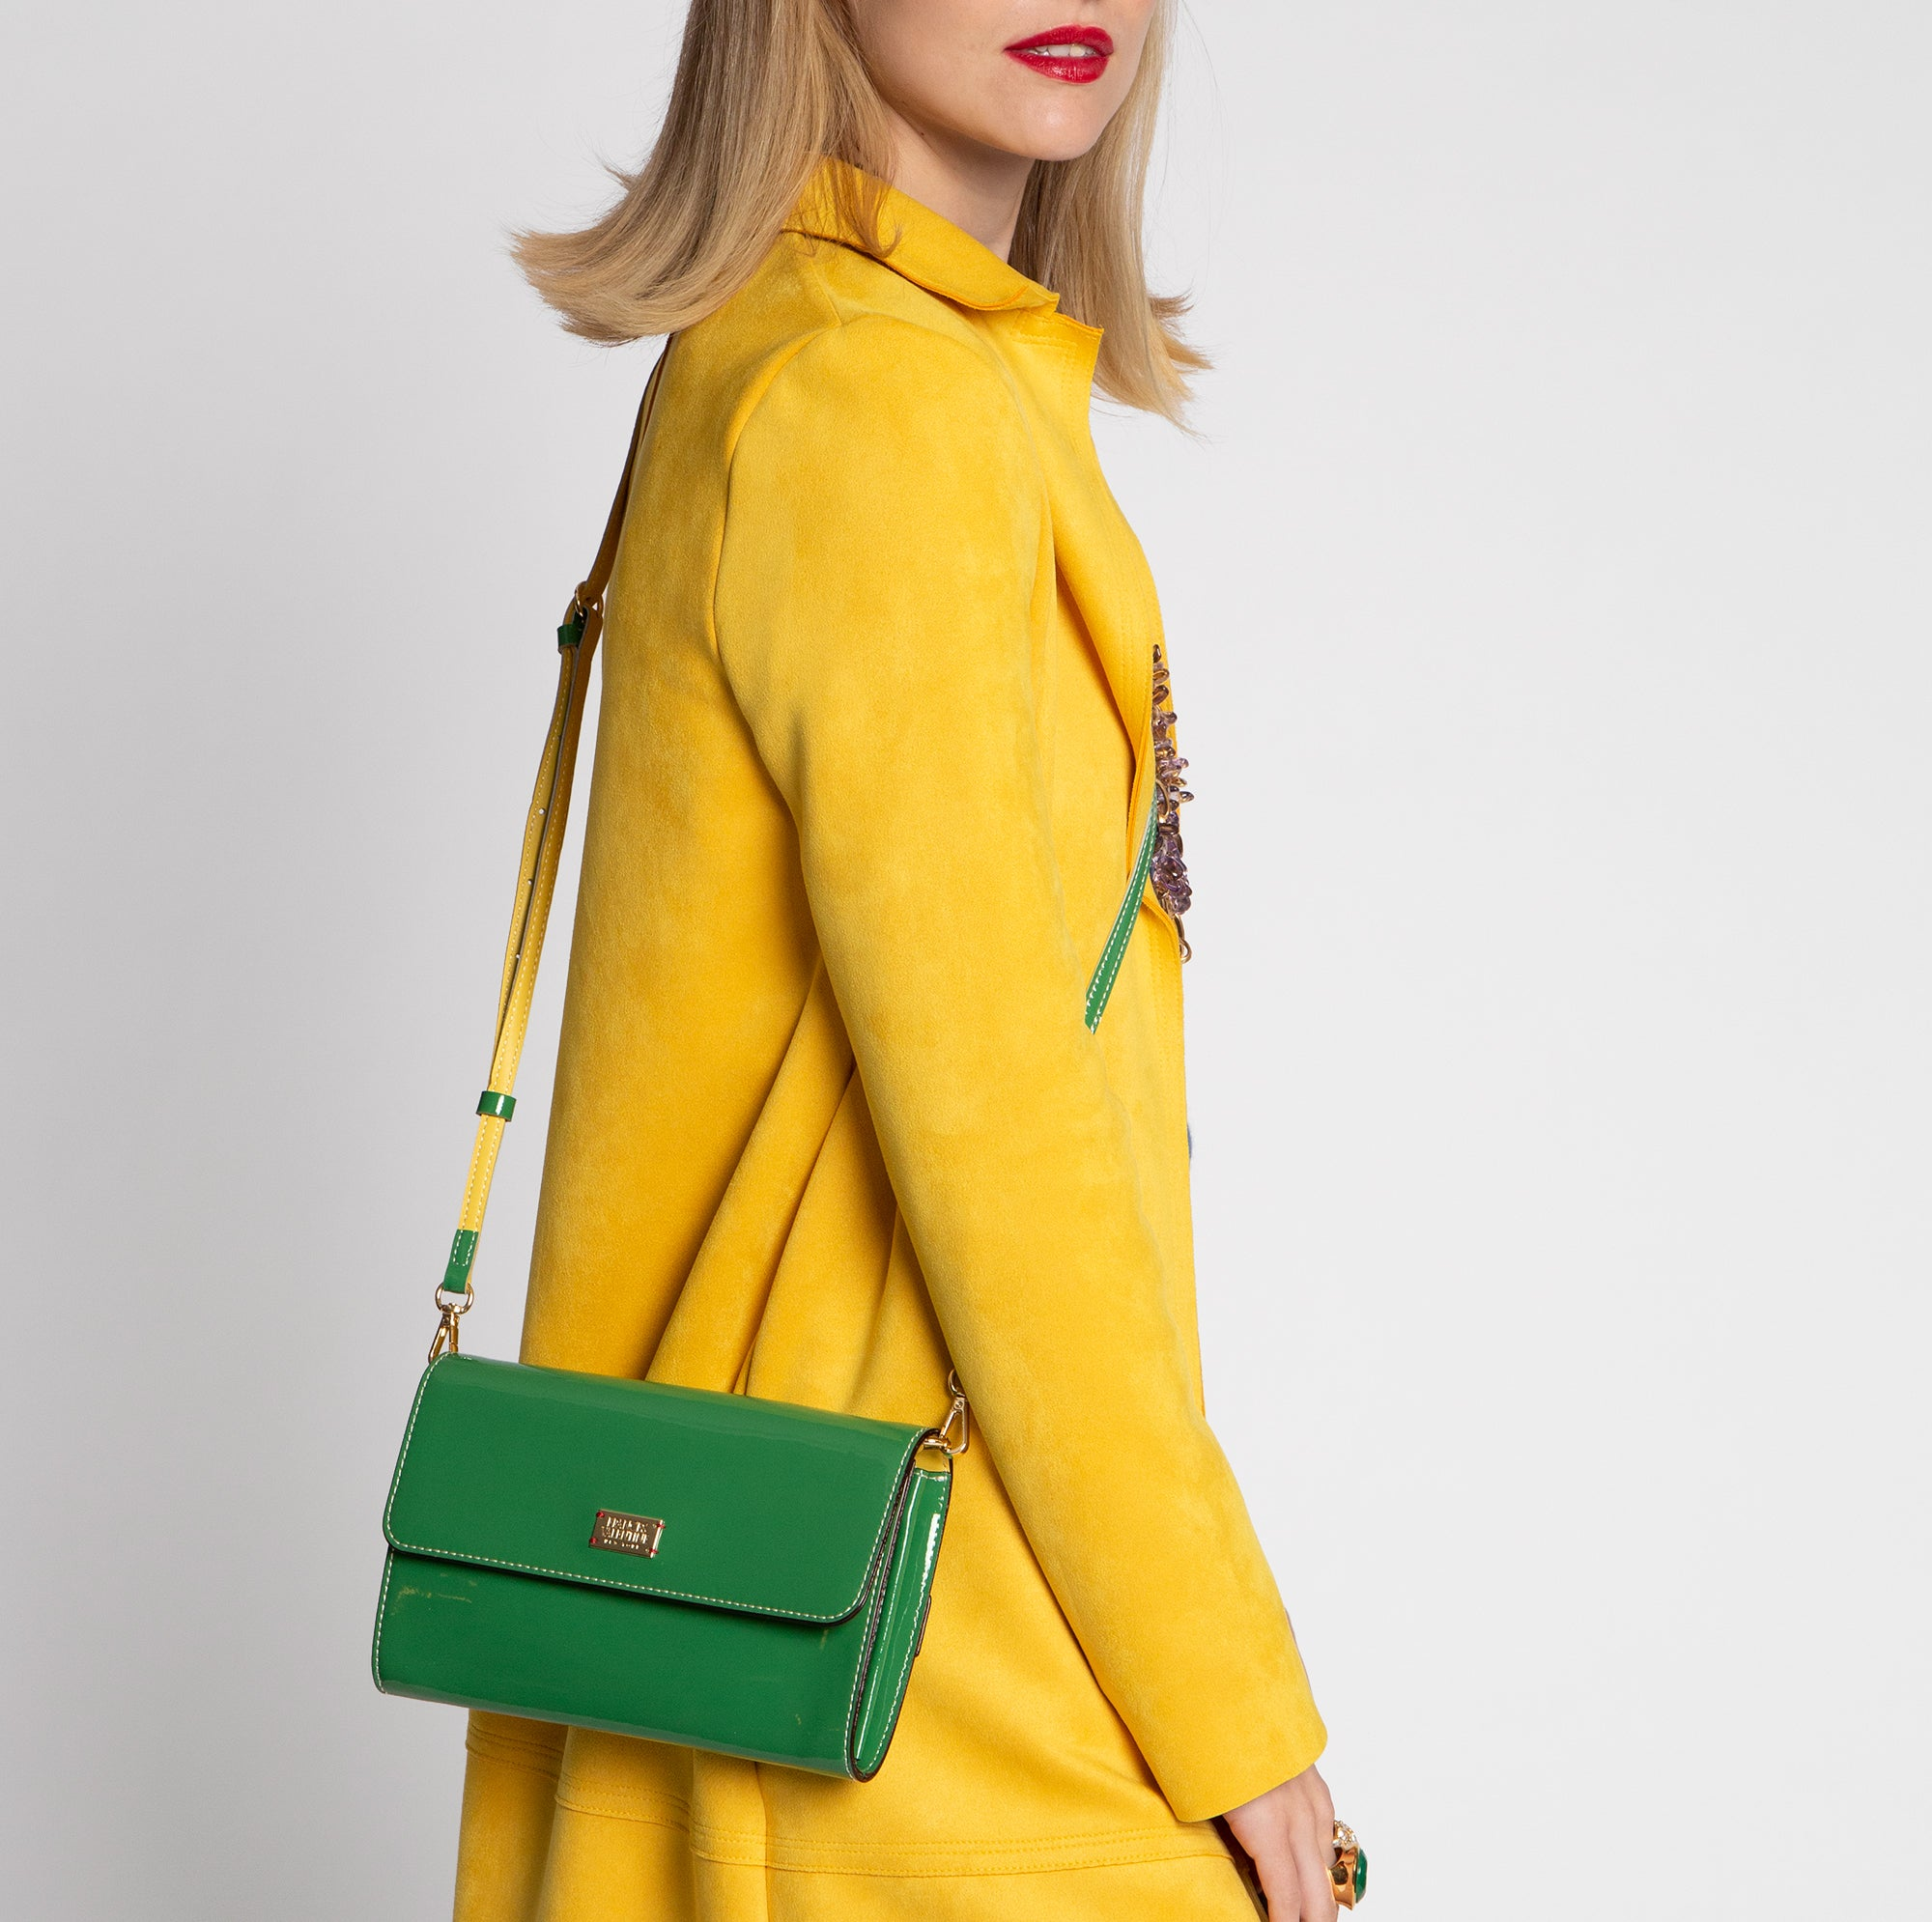 Kelly Crossbody Clutch Soft Patent Green Yellow